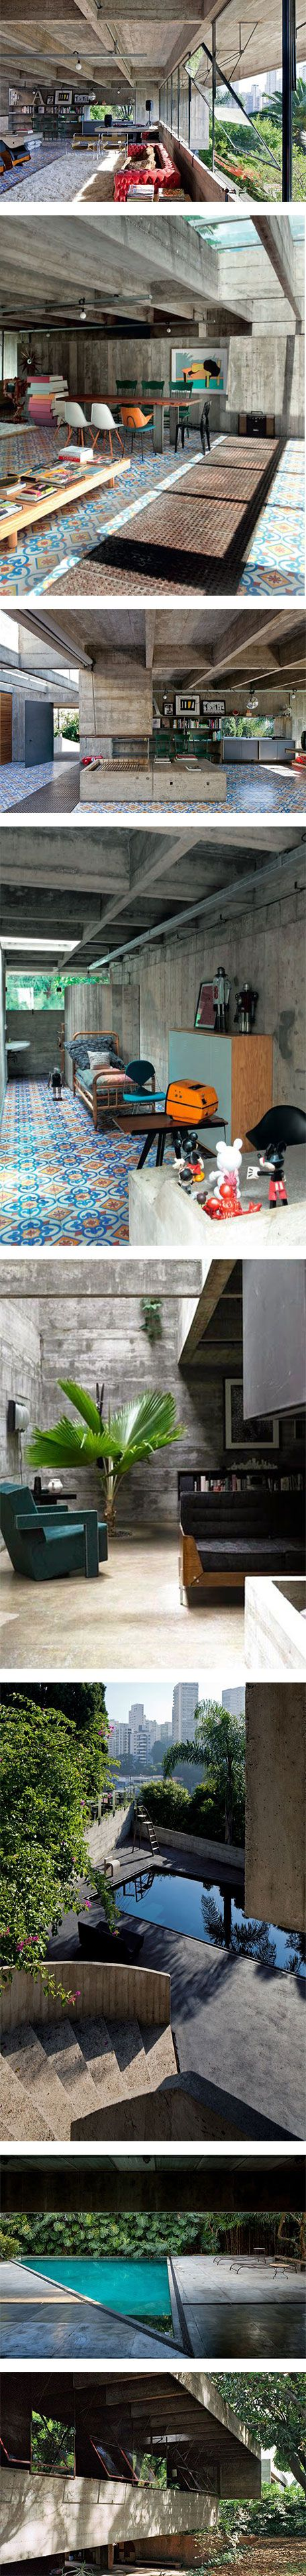 Inside the incredible home of architect Paulo Mendes da Rocha in Brazil